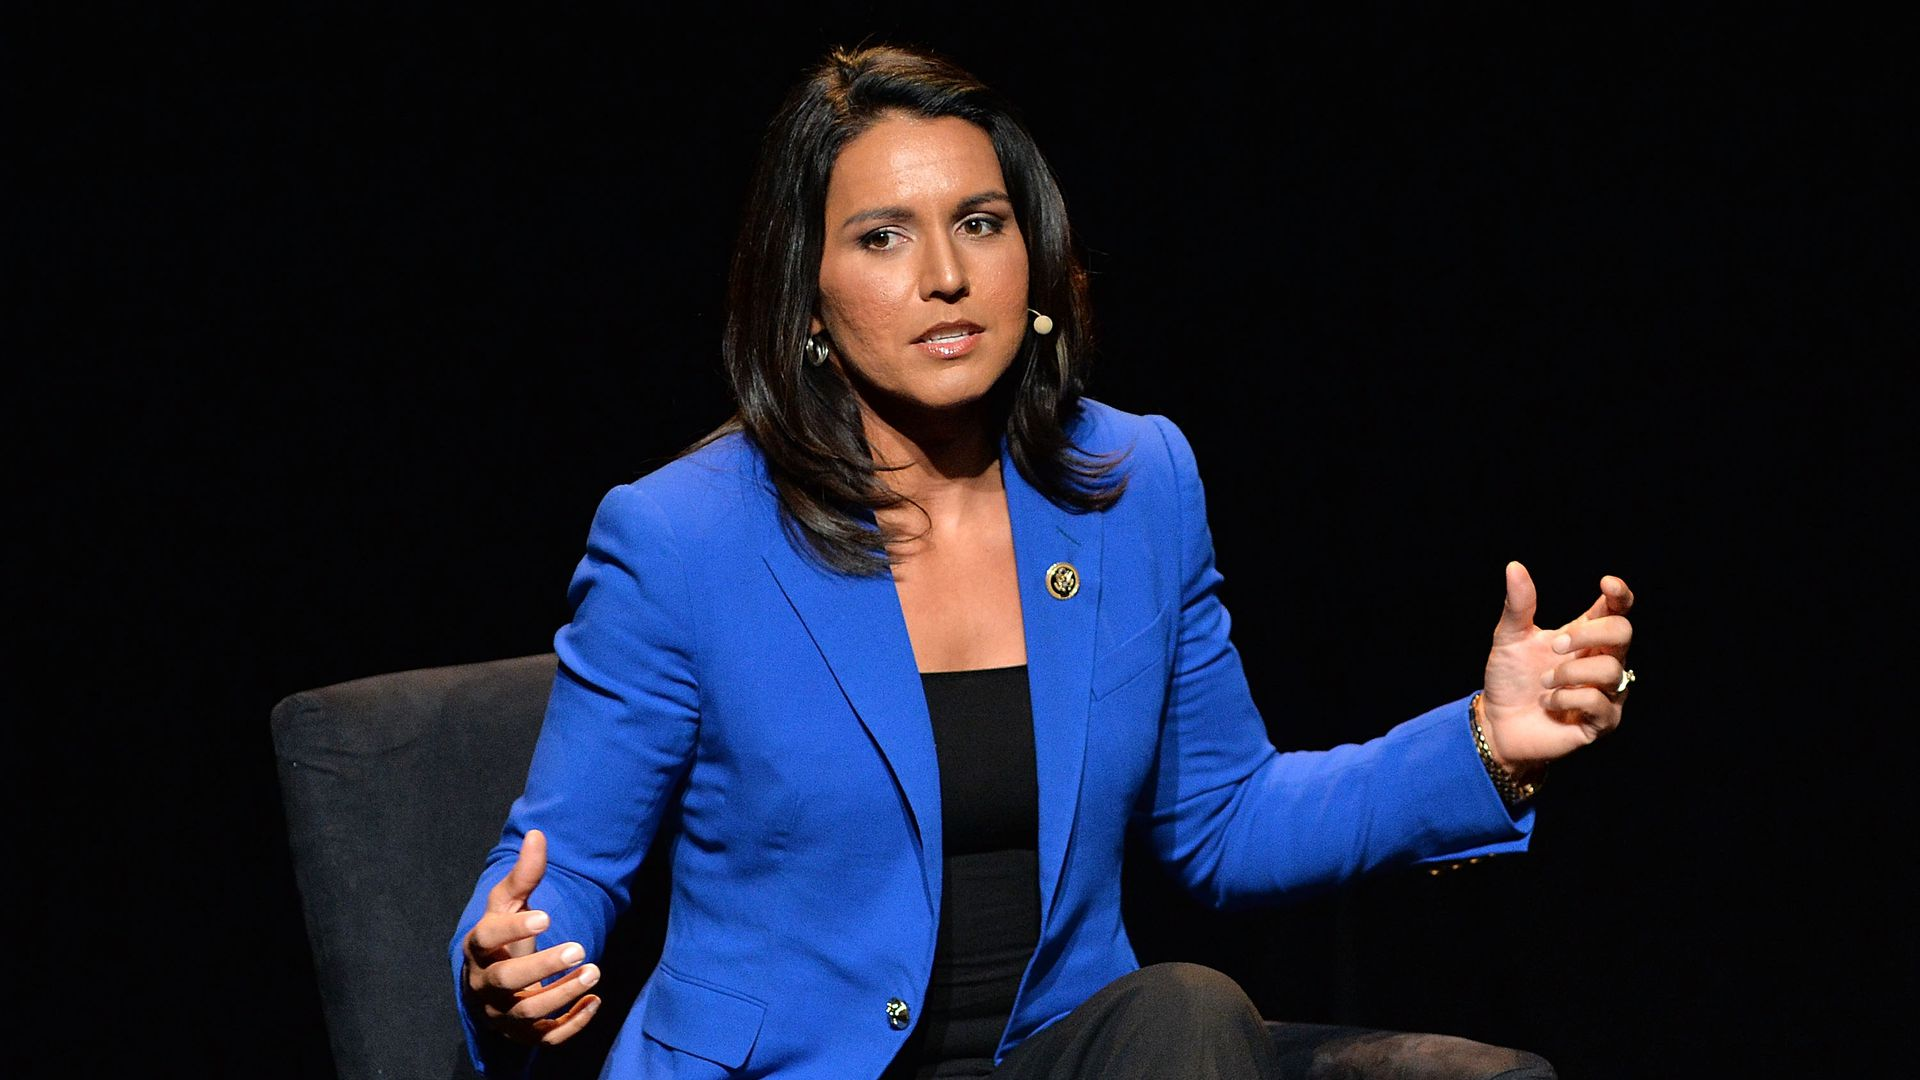 Tulsi Gabbard declines to call Syria's Bashar al-Assad a War Criminal